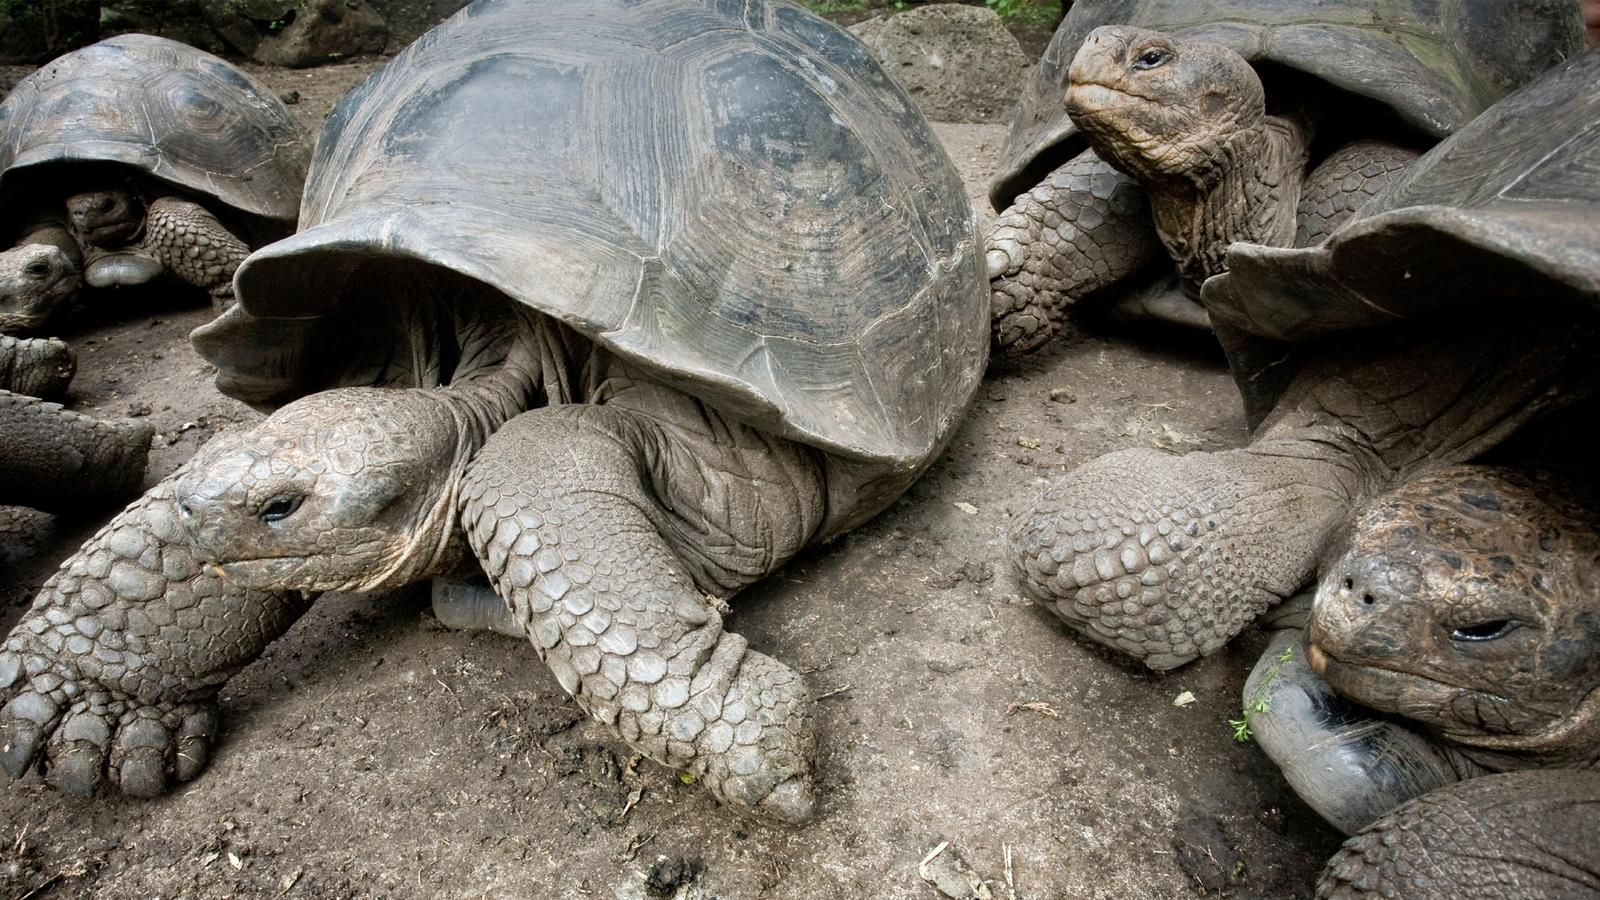 Giant tortoises laying out on the rocks in the Galapagos